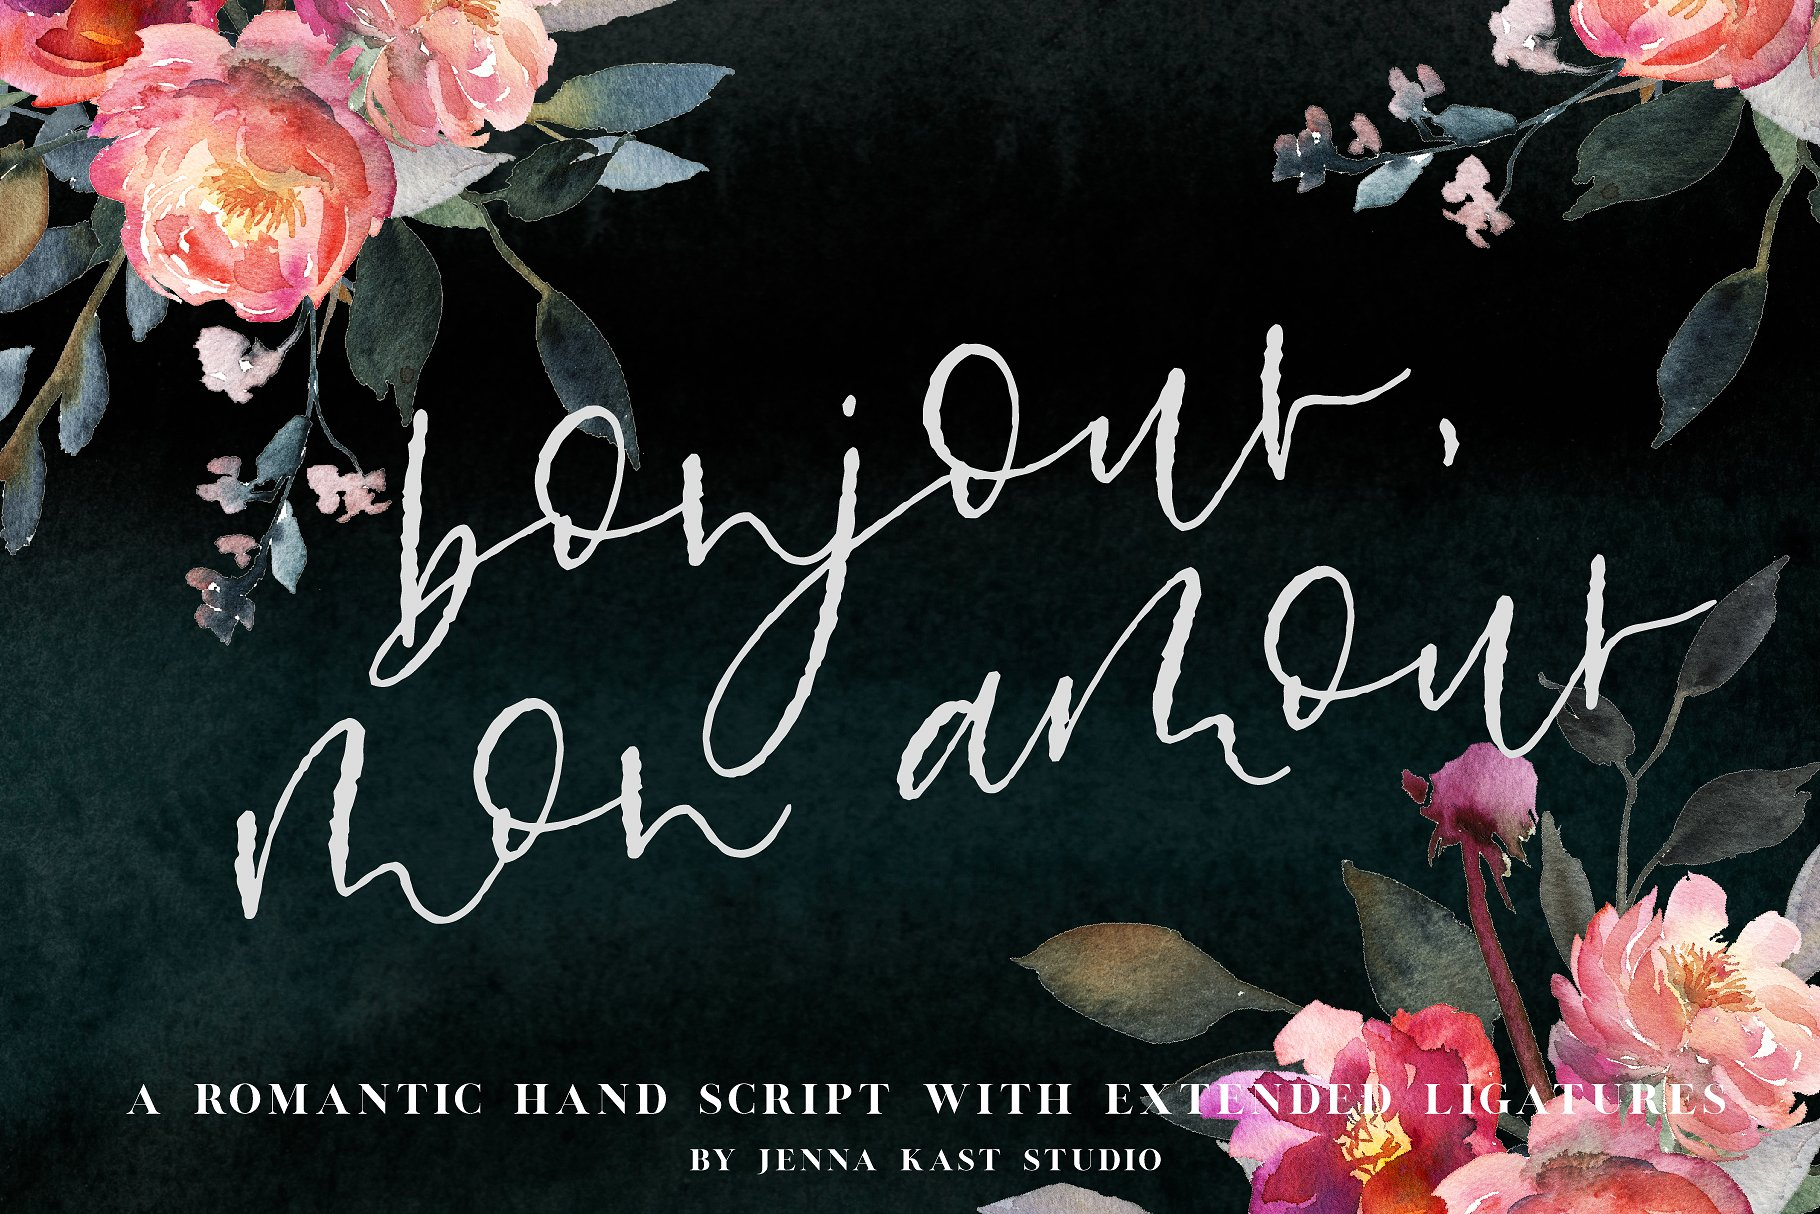 Bonjour Mon Amour Font Bonjour Mon Amour is a romantic, textured hand script signature font. Perfectly imperfect, this romantic font works great for branding, signatures, logos, product names and headlines. Each letter has at least one alternate, allowing you to play around and make your text look like more natural hand lettering. The font also includes 30 letter combination ligatures to create better flow. The alternates and ligatures allow you to customize the look of your text, keep it natural and create endless combinations. This font is great for designers - outlining your text in this font allows for further adjustments and alignments to make the script look even more natural and handwritten. Buy Now $9